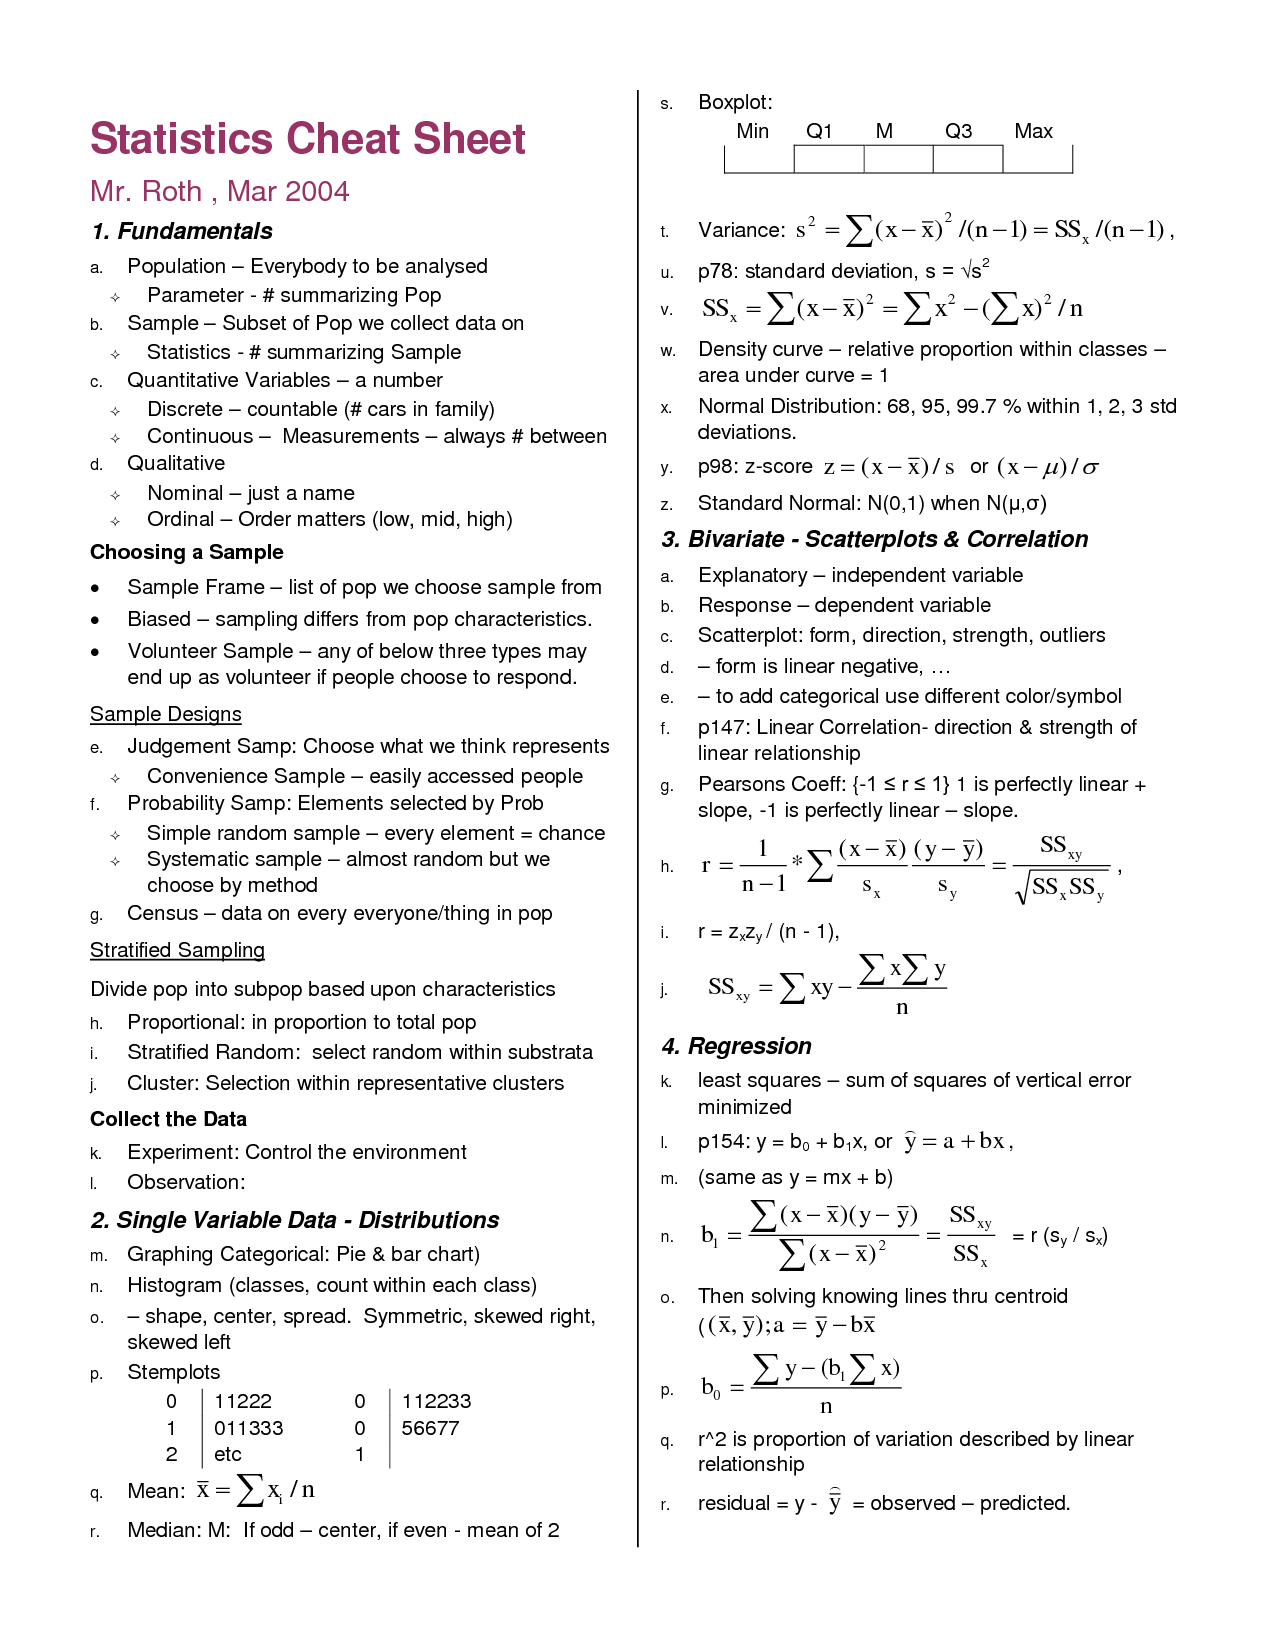 23 Awesome statistics formulas cheat sheet | high school statistics